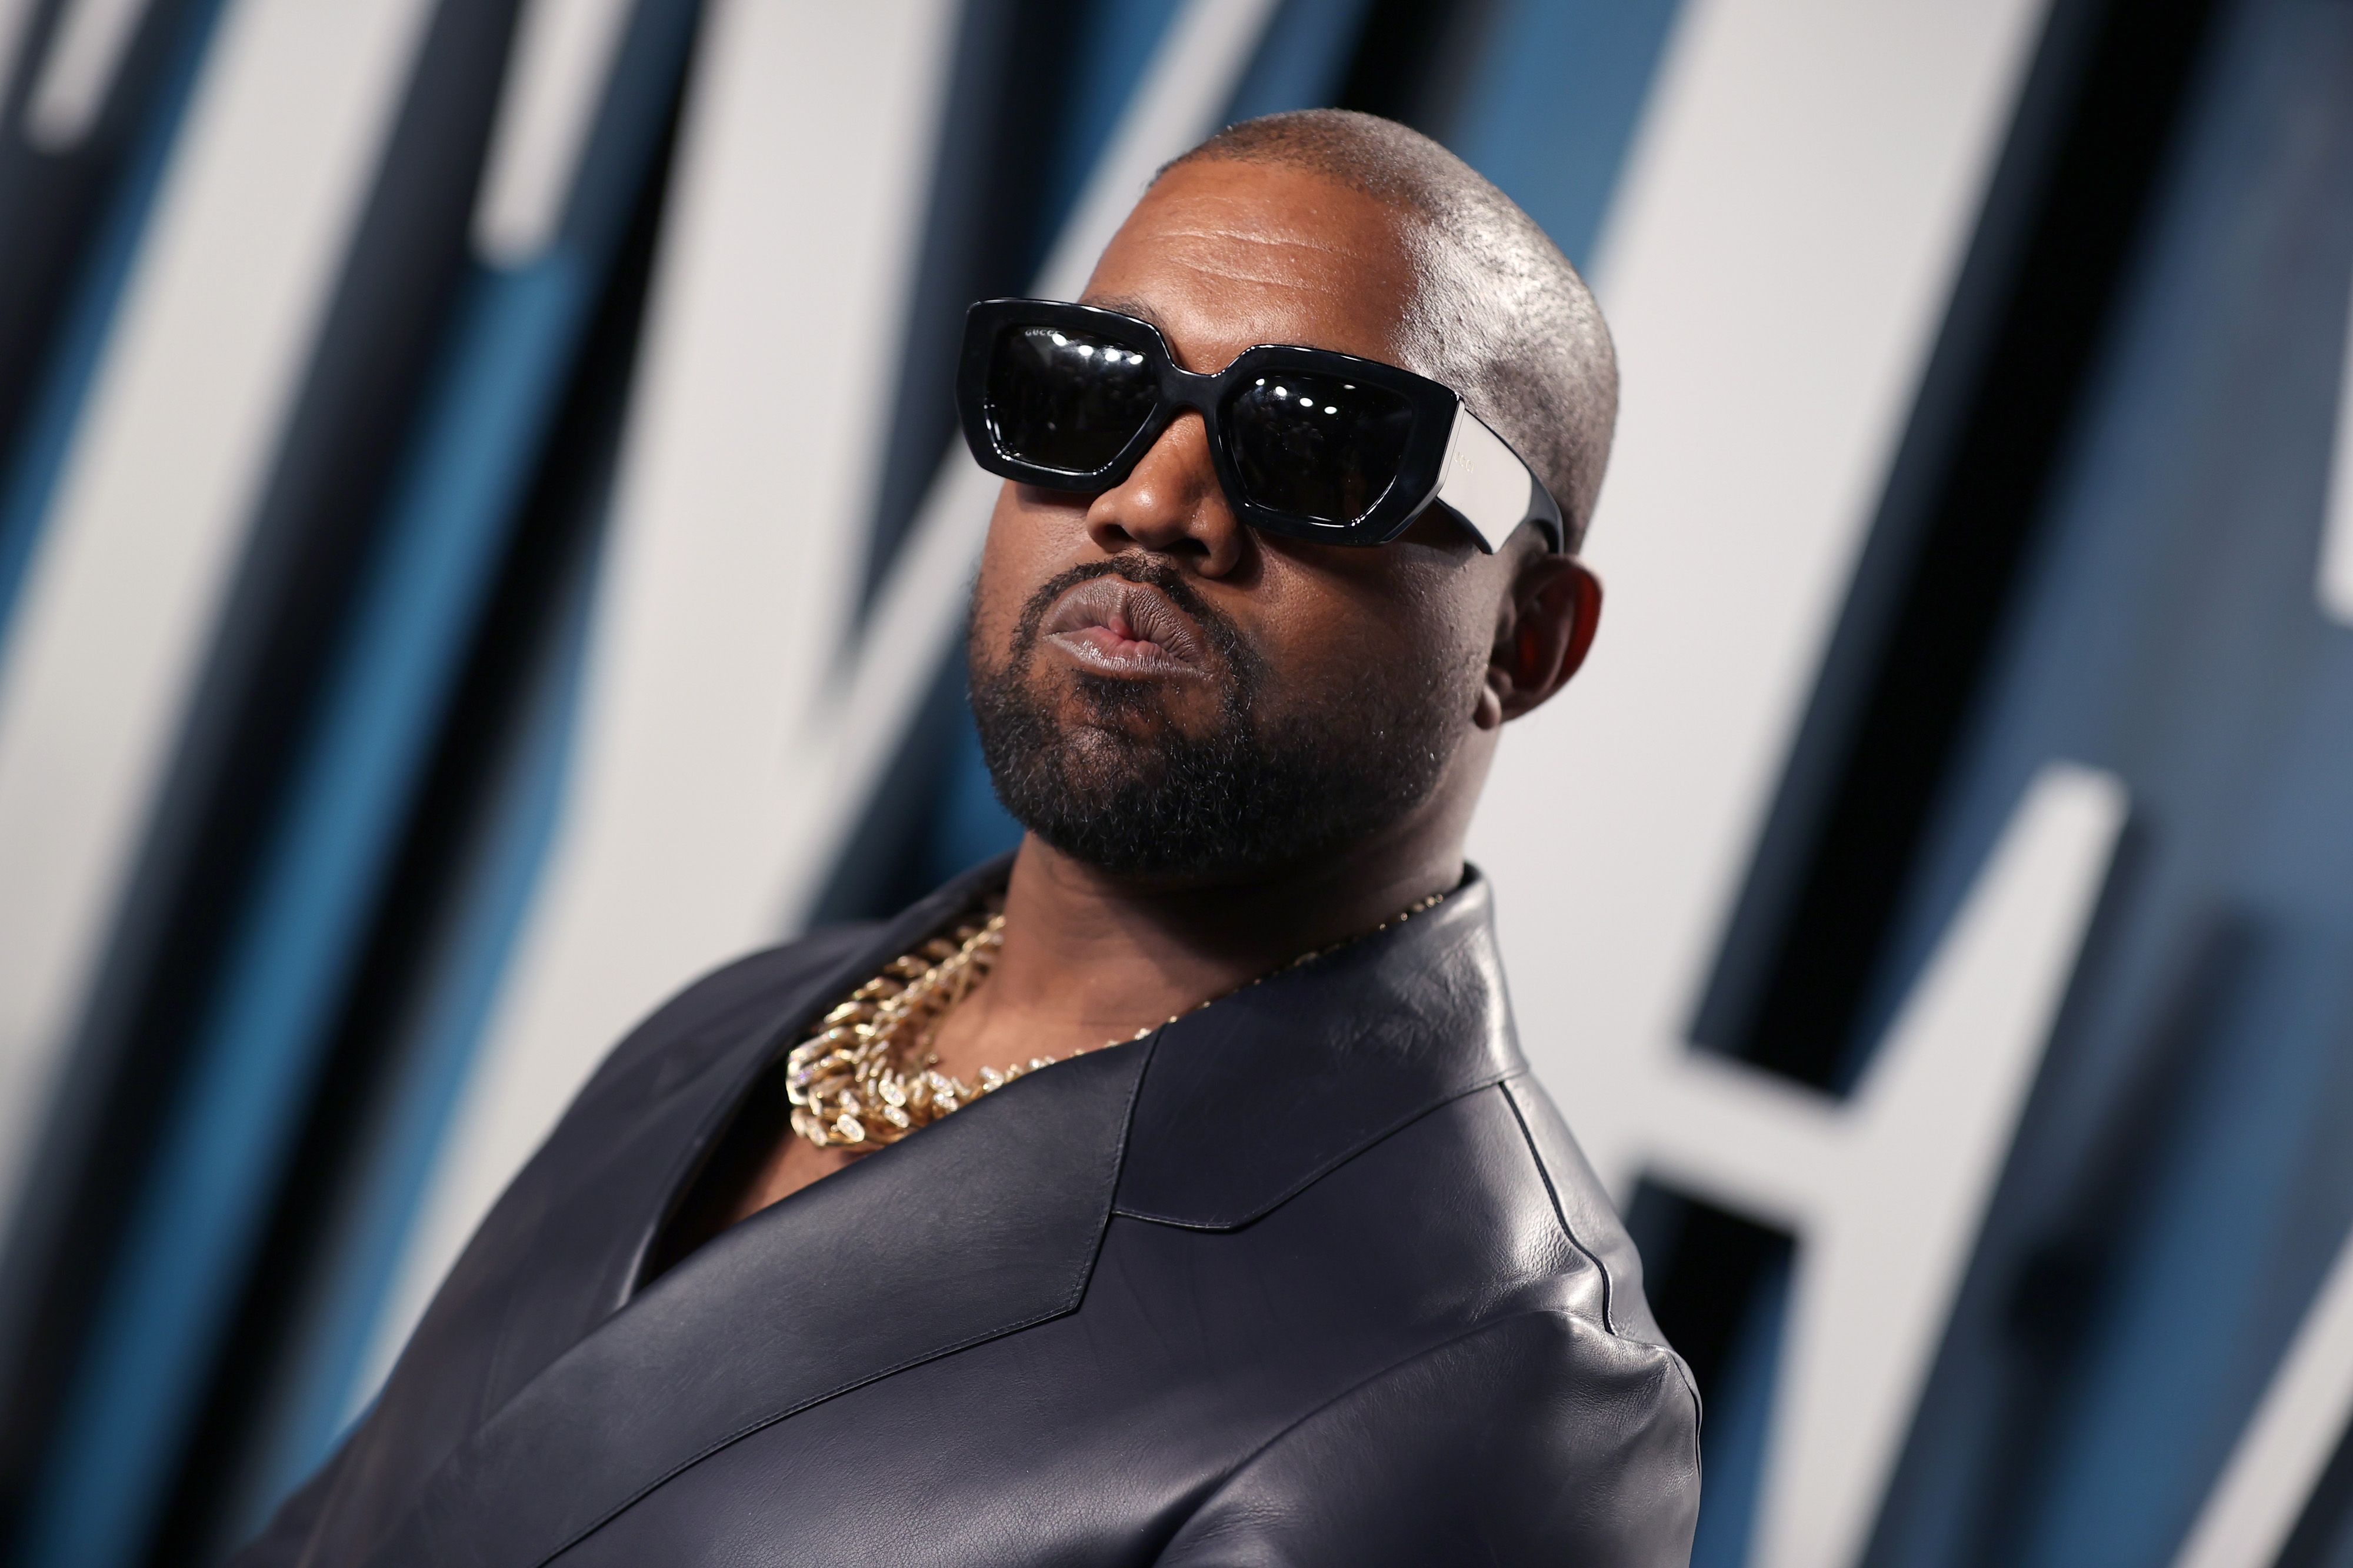 Kanye West poses for photographers